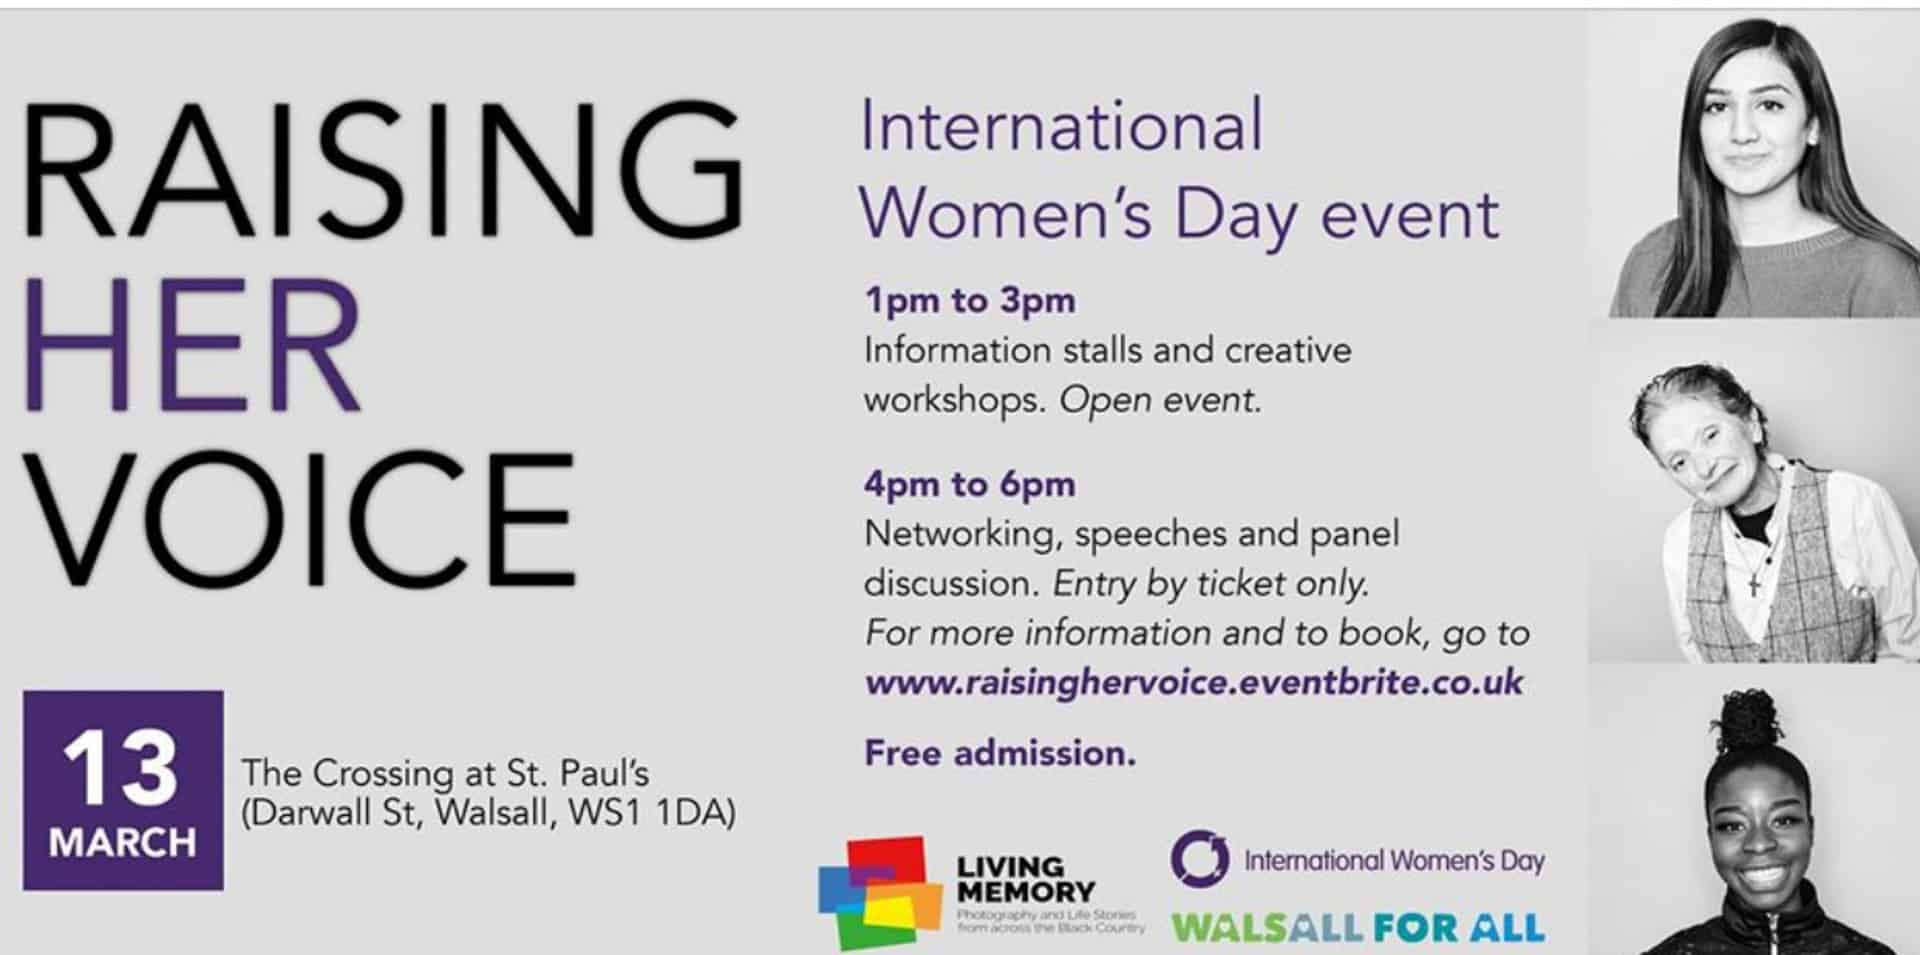 The invite for the event Raising Her Voice to mark International Women's Day at The Crossing St Paul's, Walsall, 13th March 2020